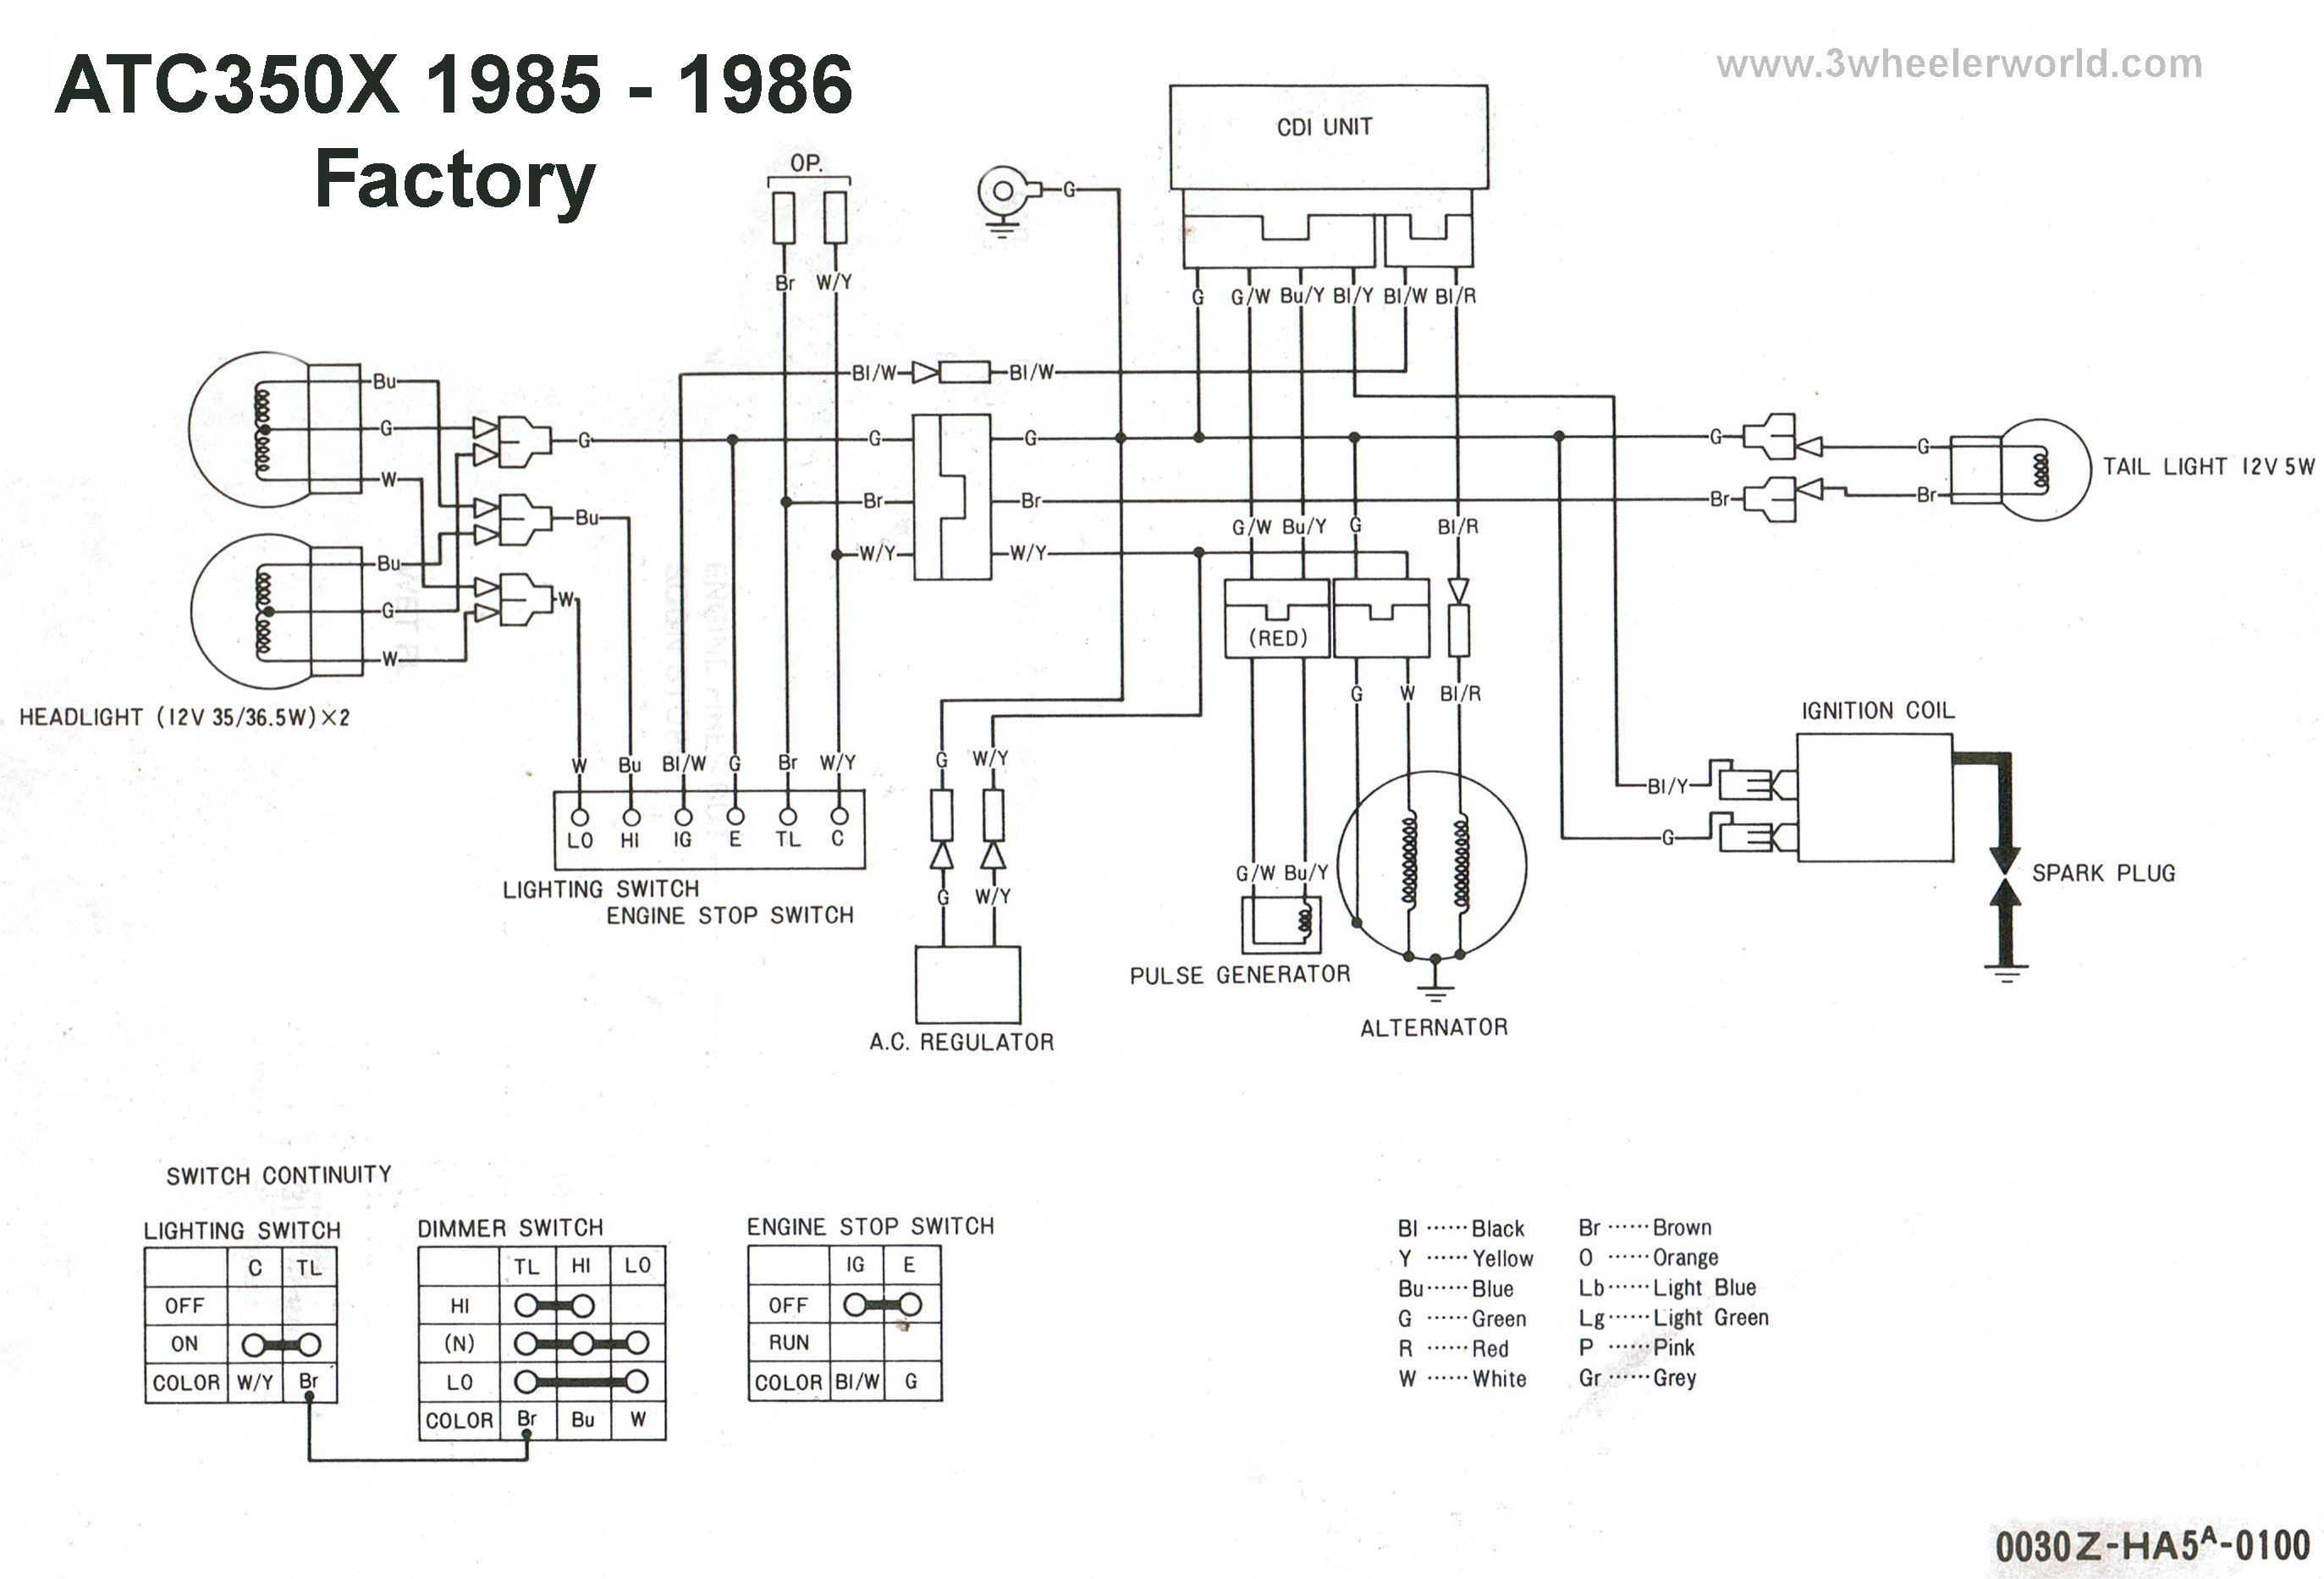 ATC350Xx85Thru86 honda 250x wiring diagram on honda download wirning diagrams honda trx200 wiring diagram at edmiracle.co